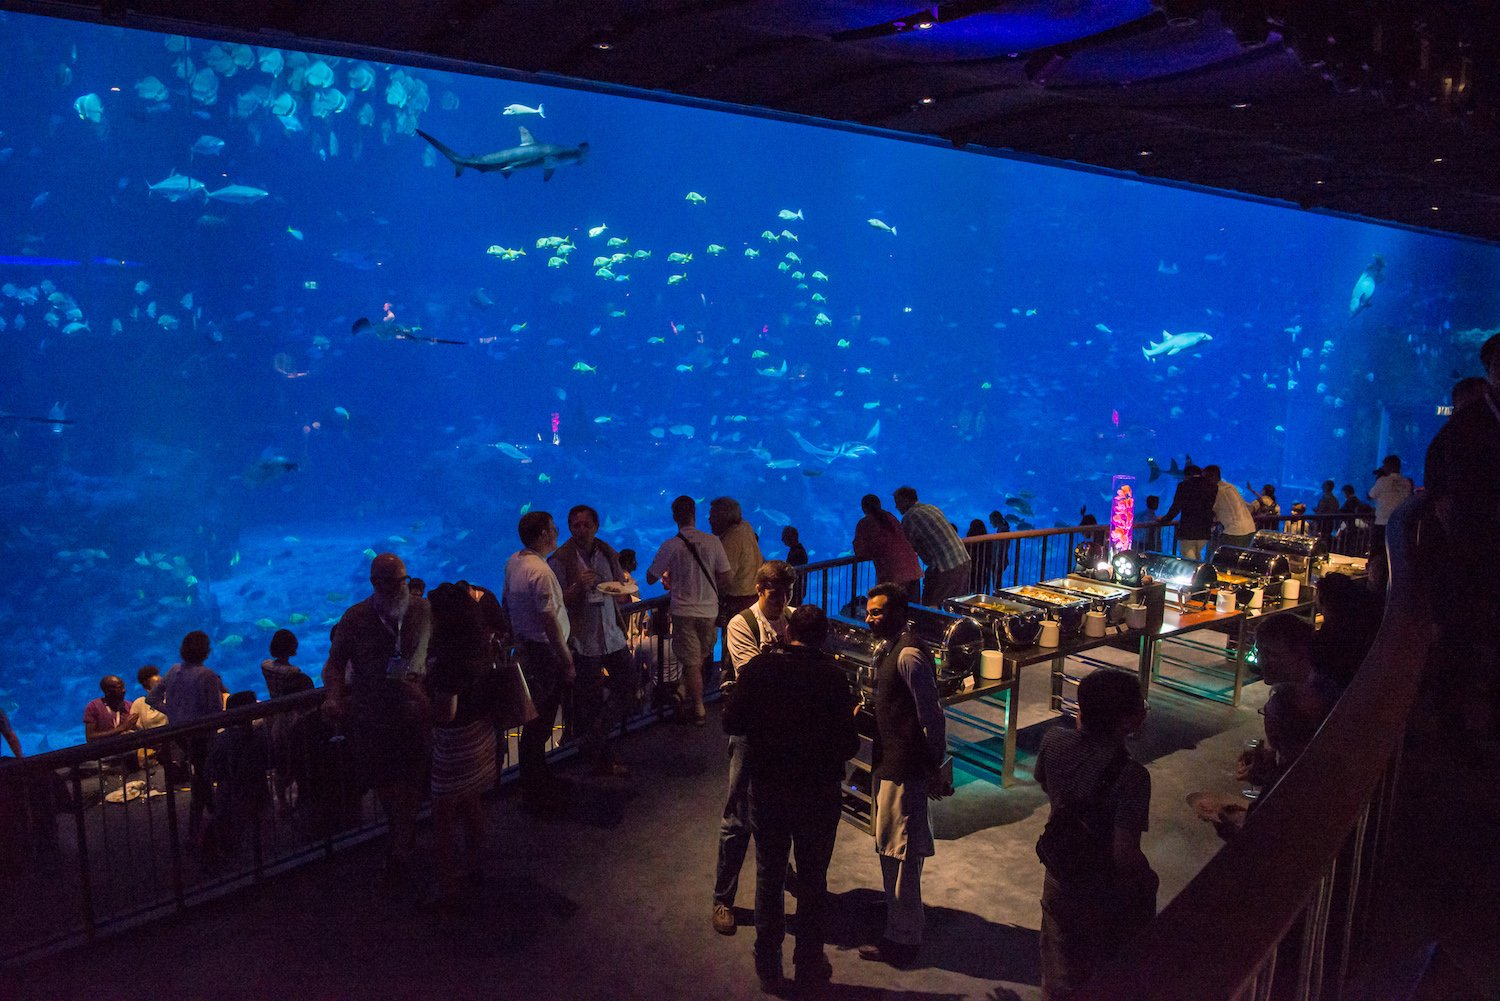 IETF 100 Social event at S.E.A Aquarium, hosted by Cisco.